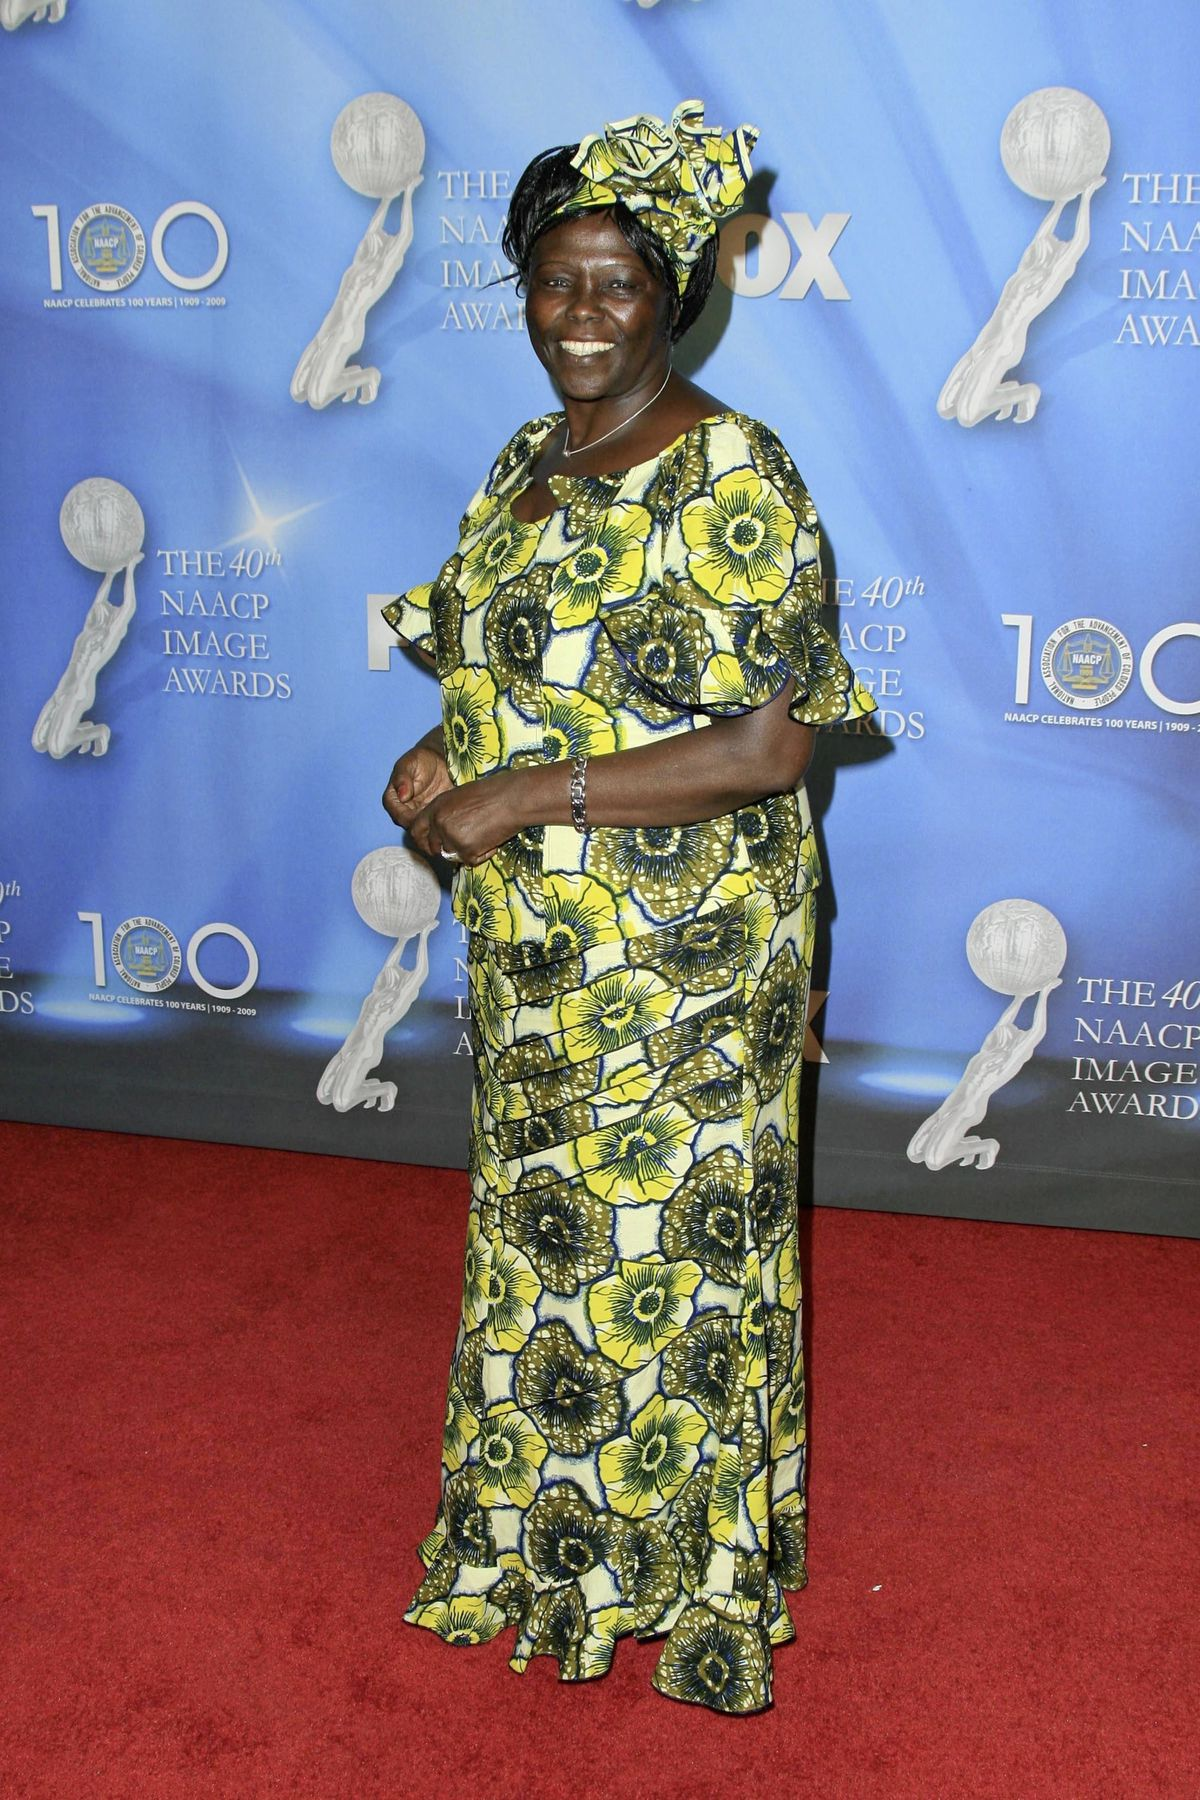 Wangari Muta Maathai at the 40th NAACP Image Awards. Shrine Auditorium, Los Angeles, CA. 02-12-09 (29295398)